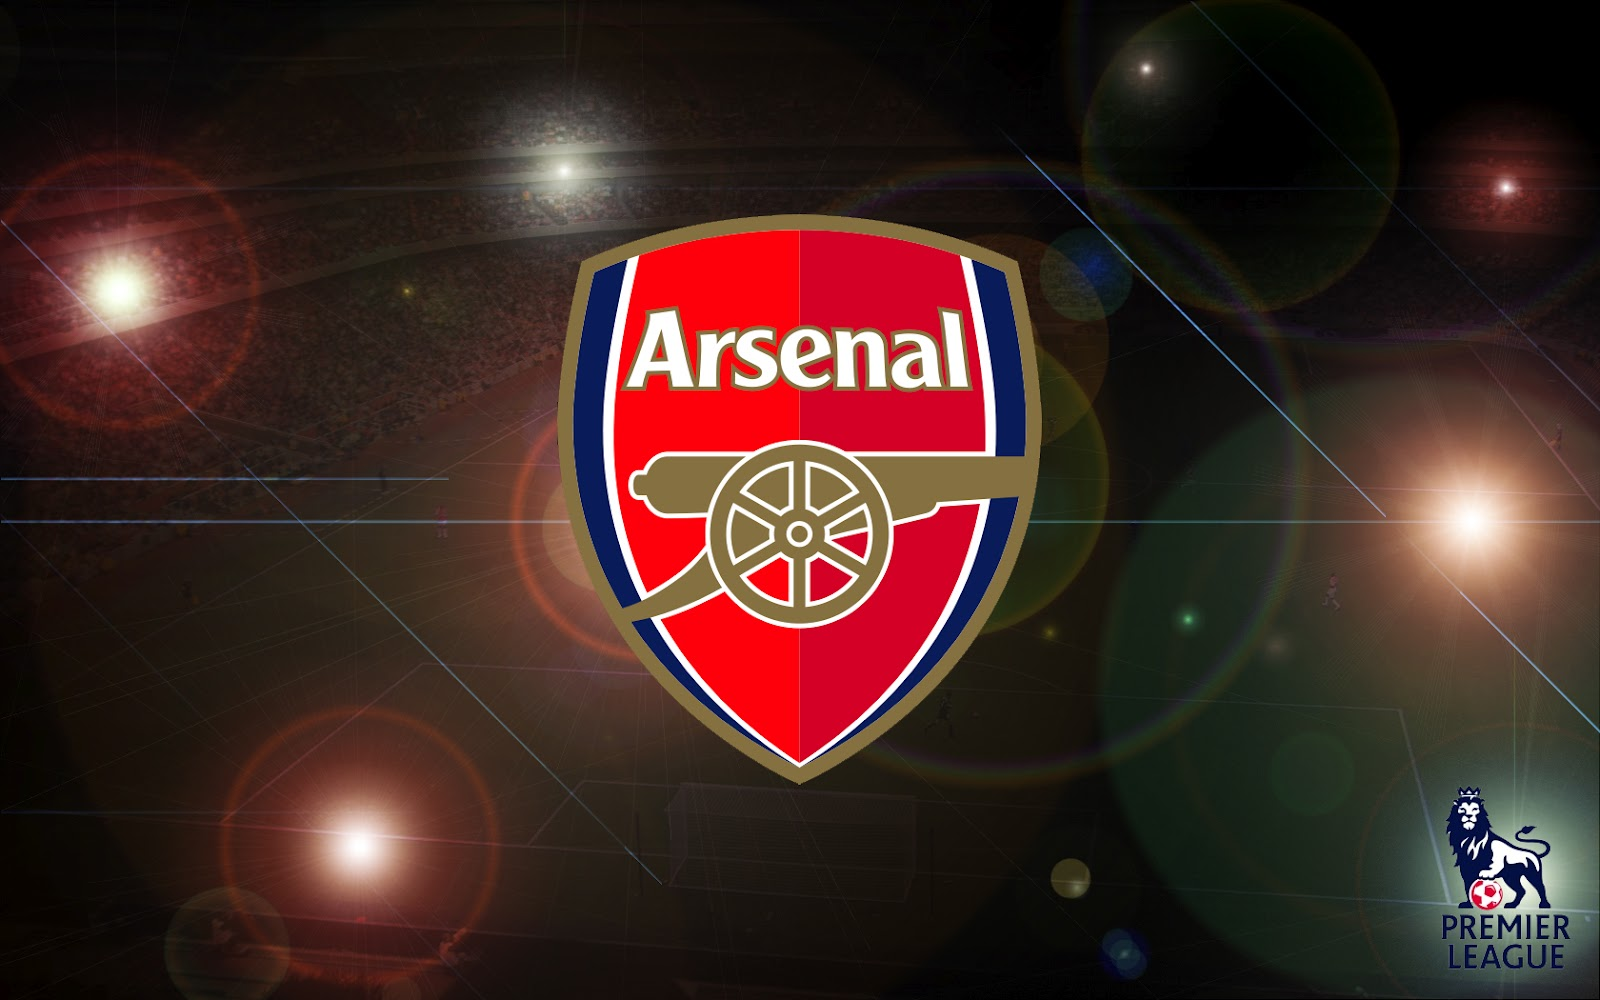 ARSENAL HD WALLPAPERS ~ HD WALLPAPERS